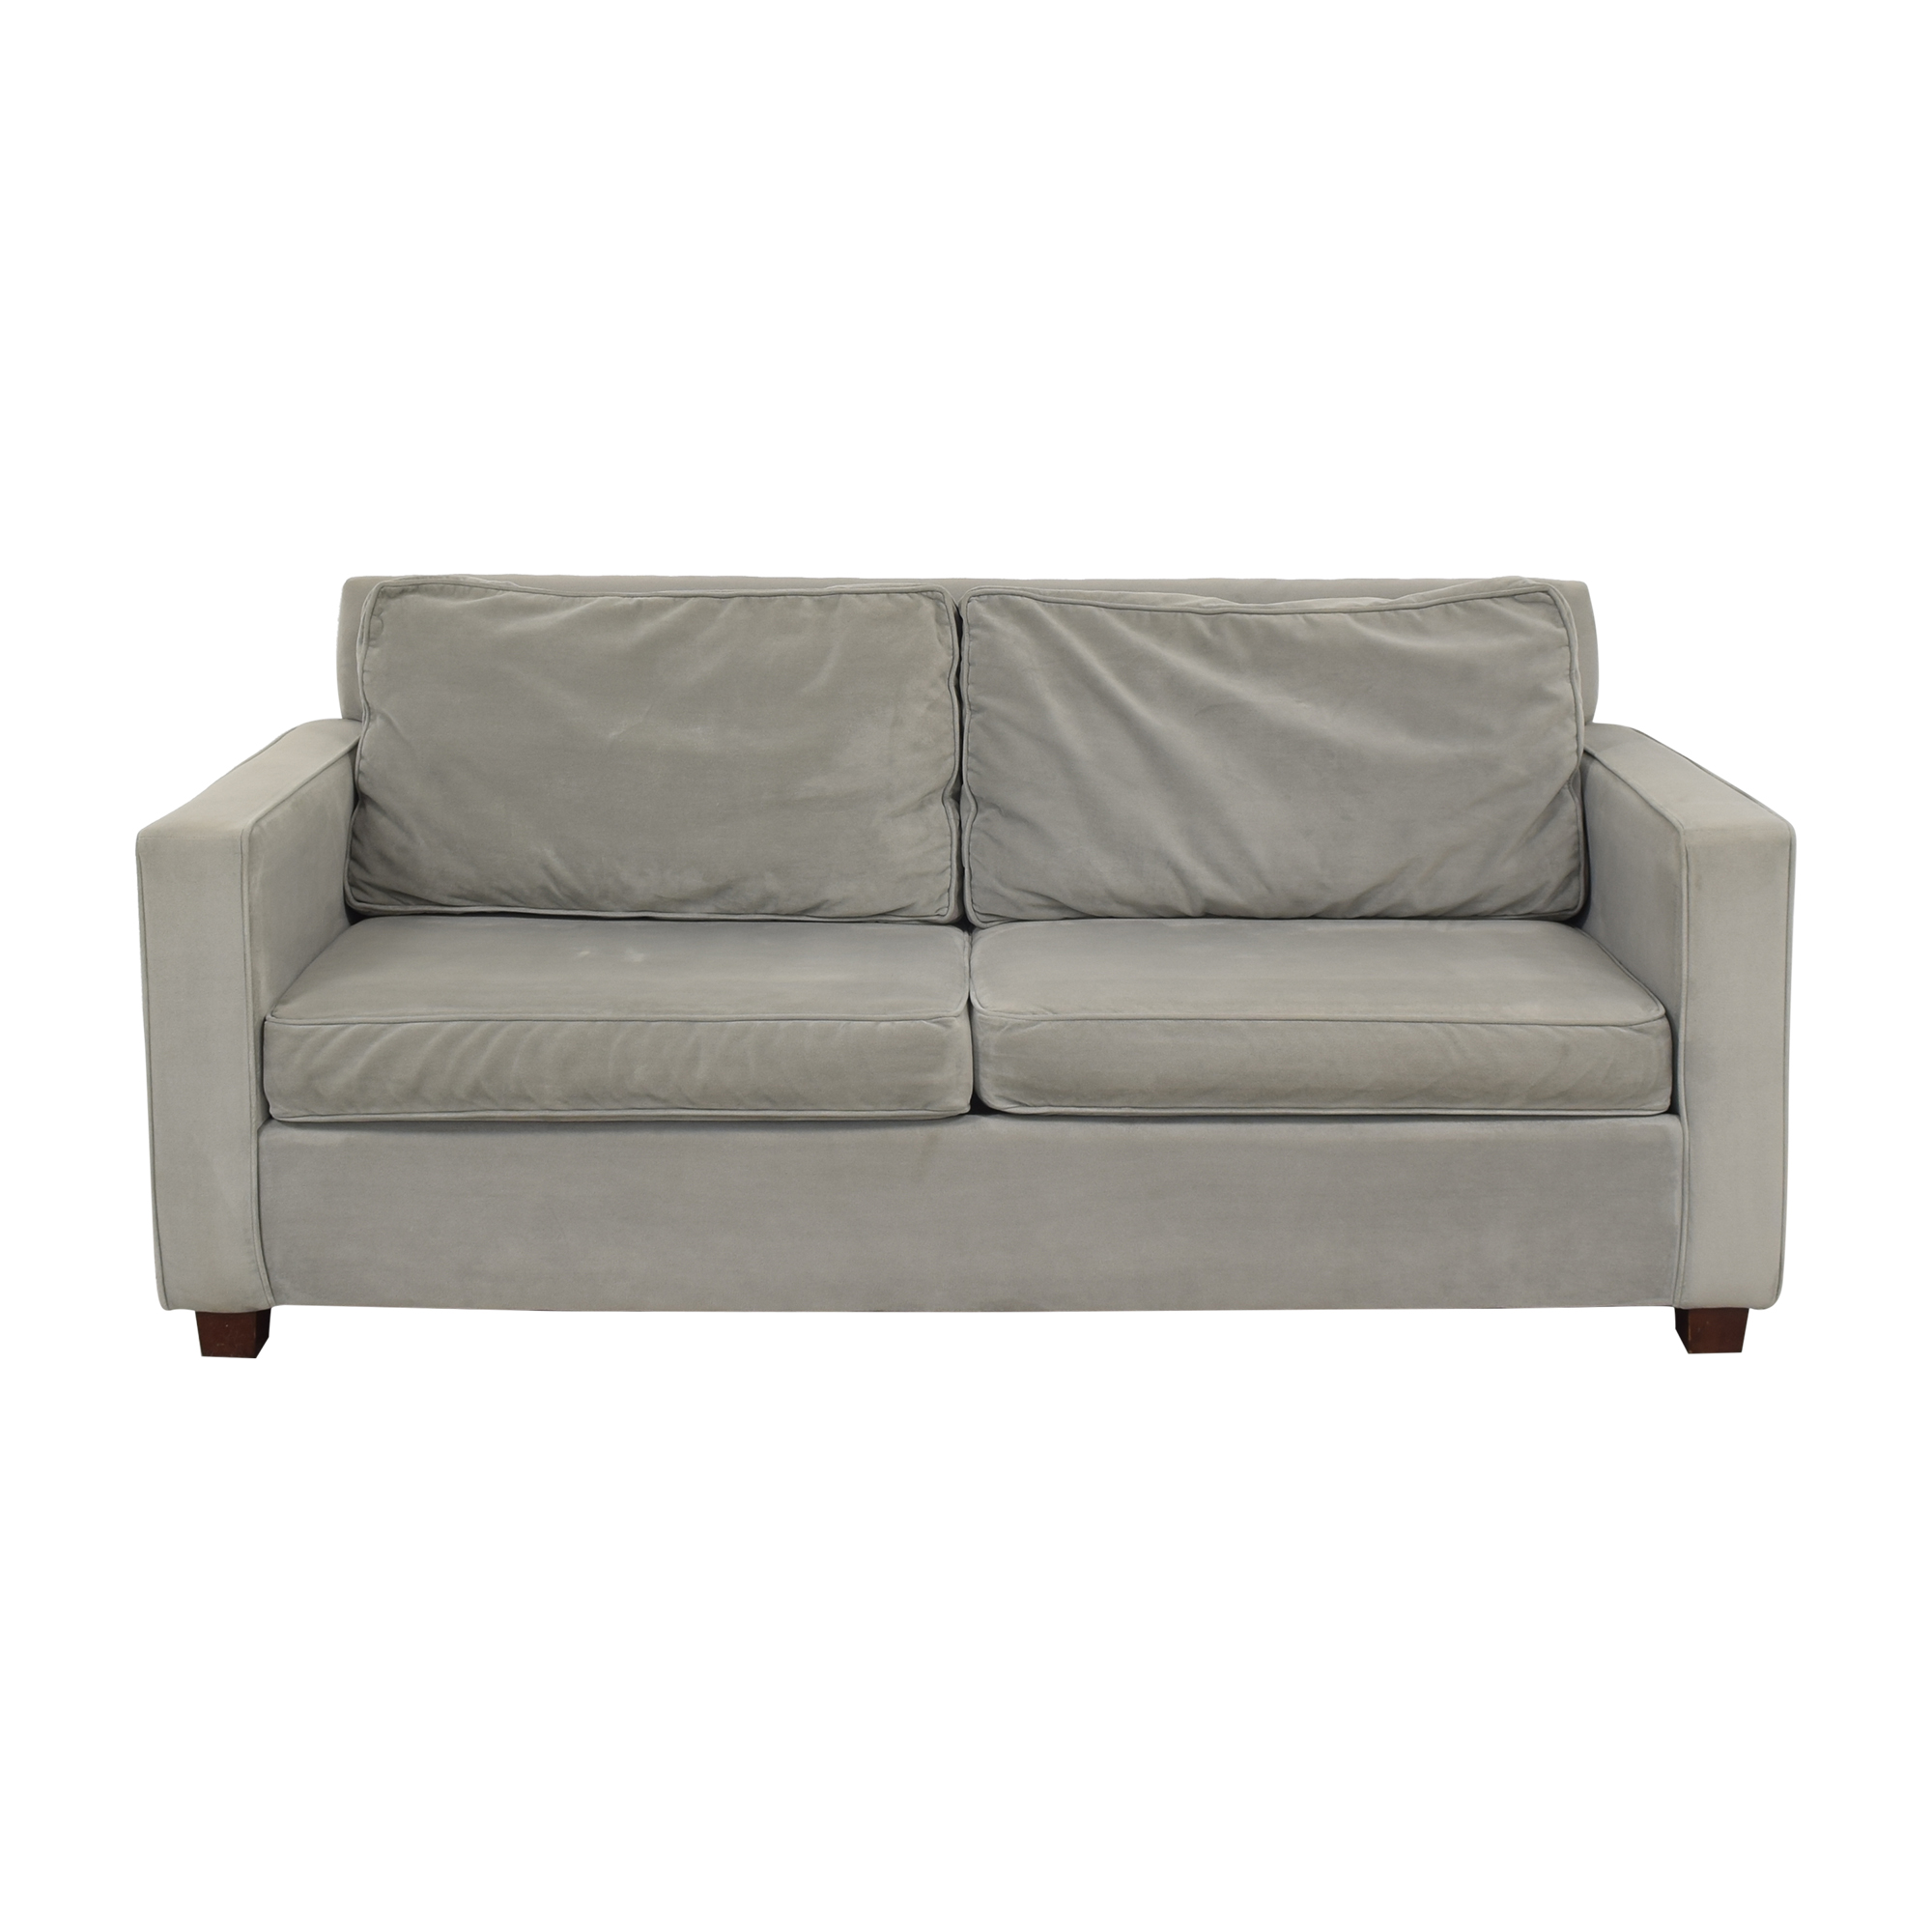 West Elm West Elm Henry Sofa light grey